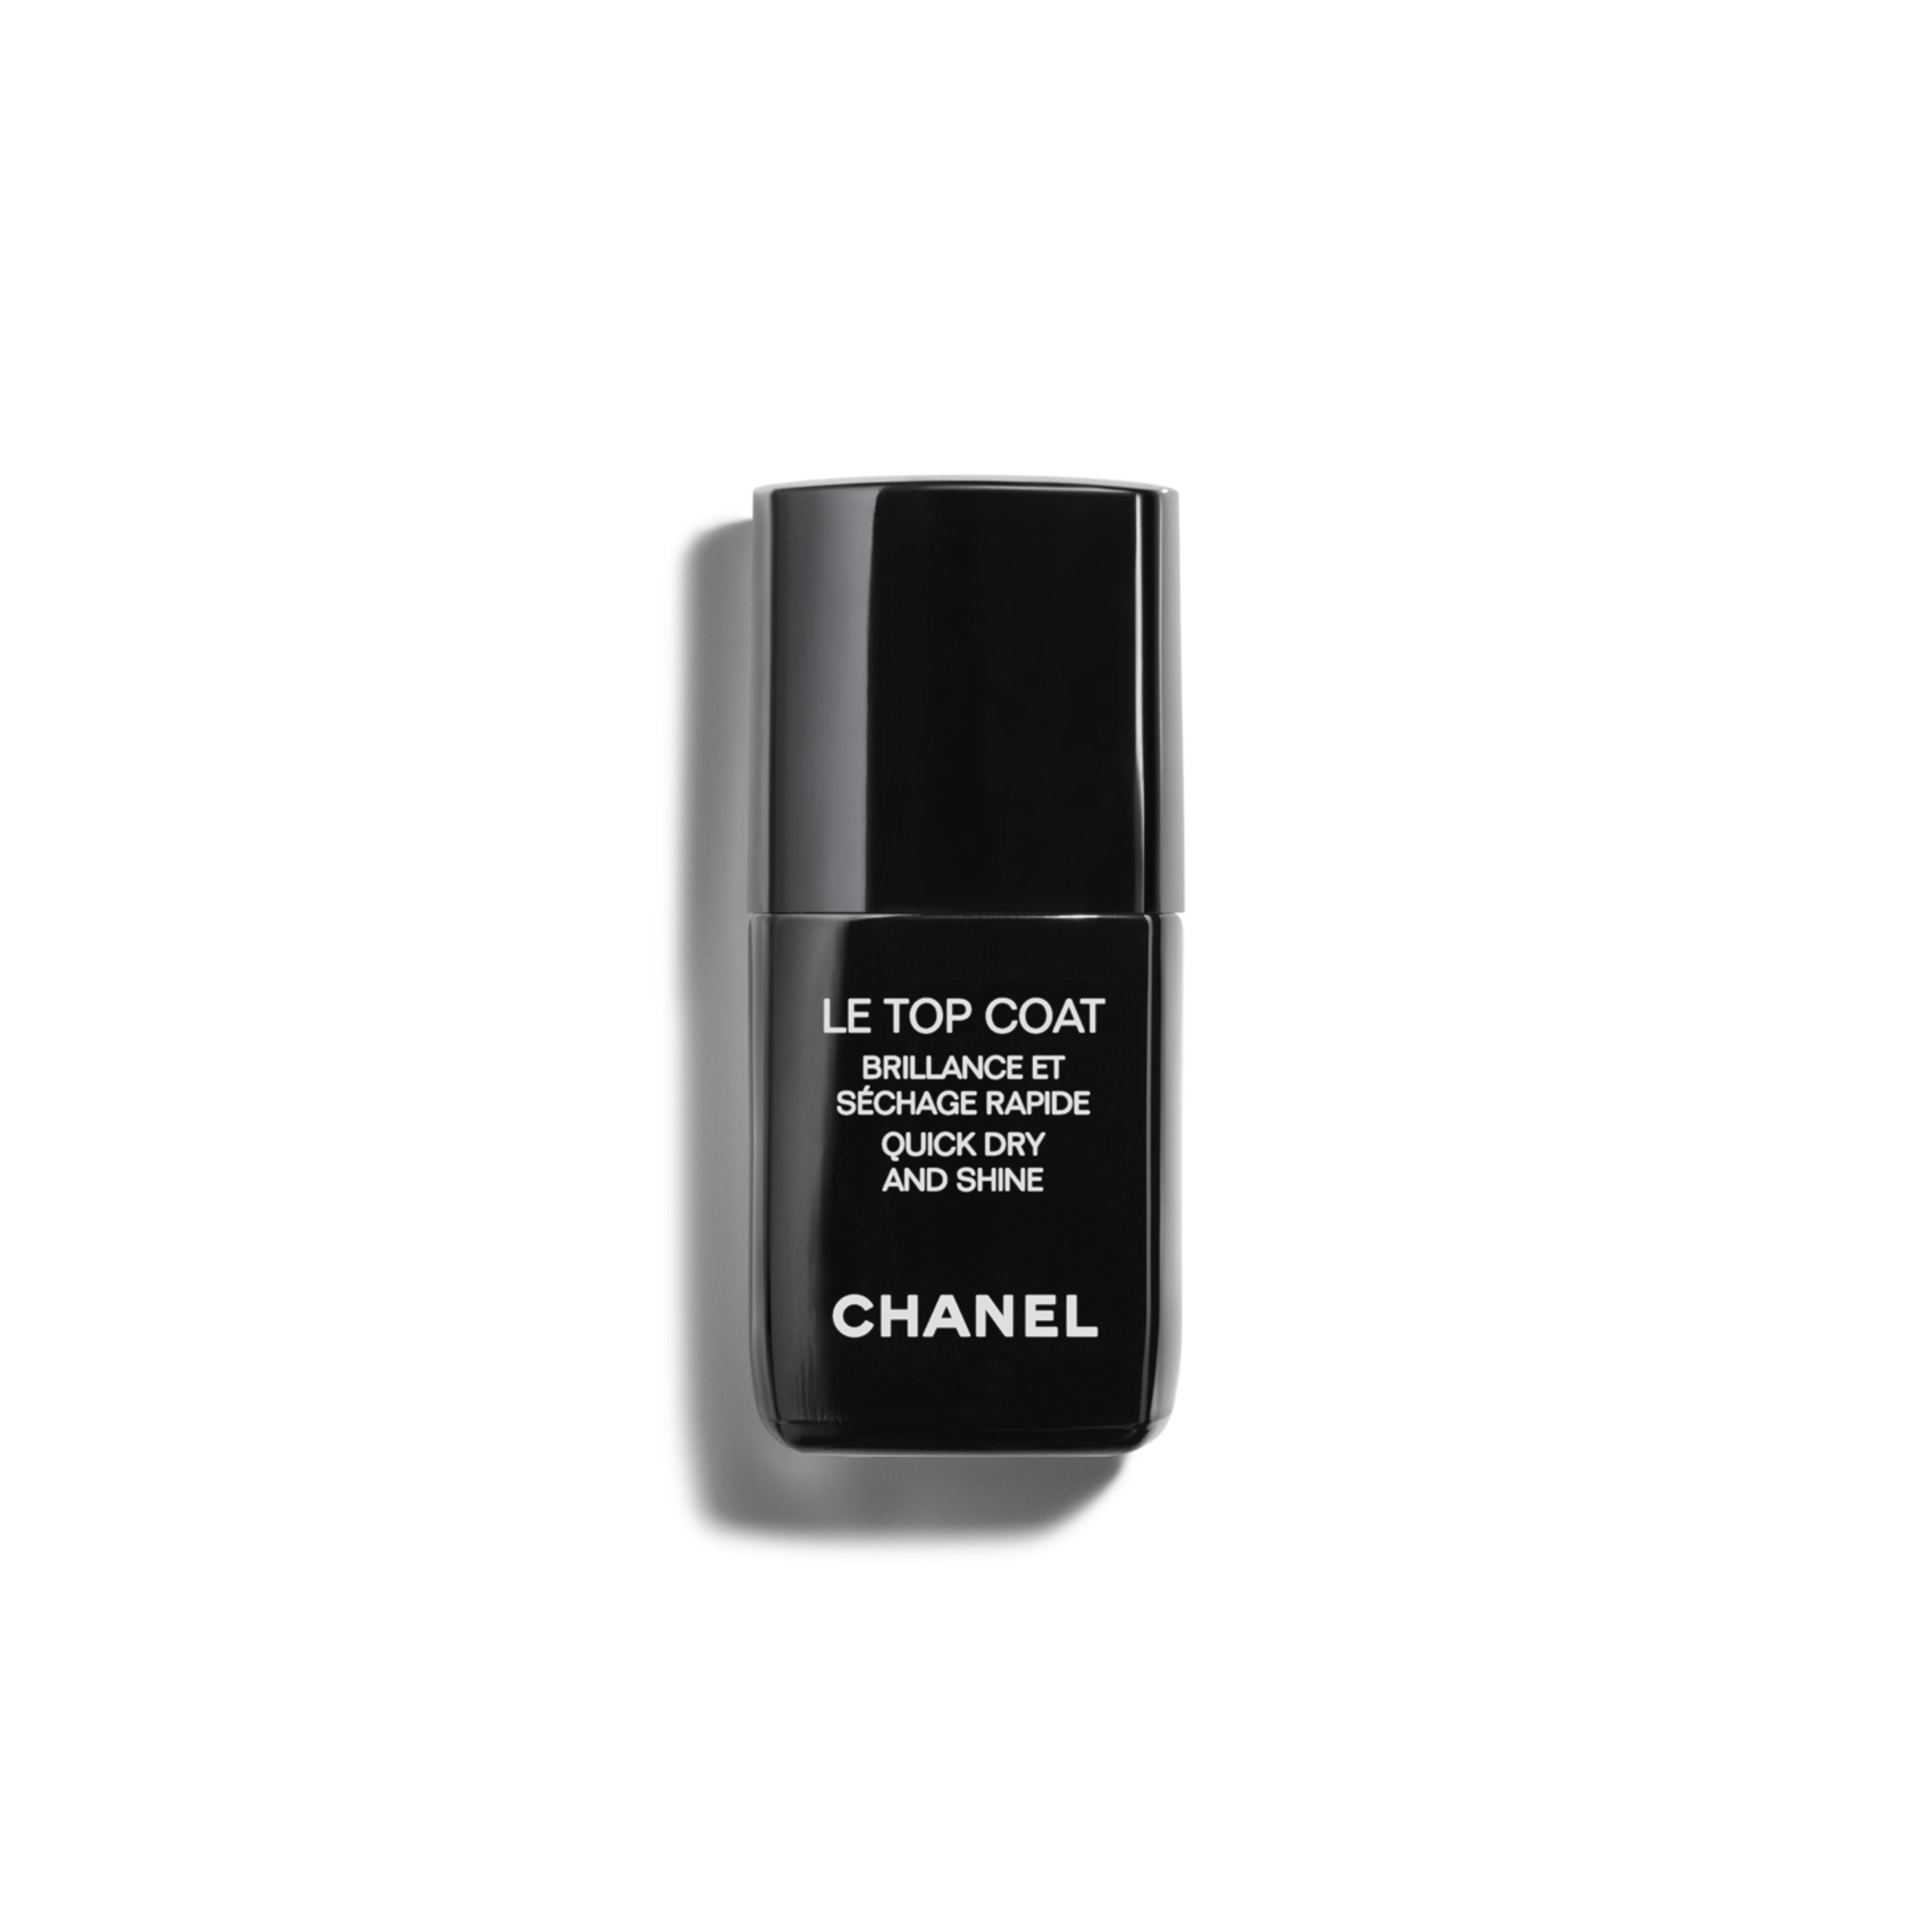 LE TOP COAT Quick Dry And Shine | CHANEL